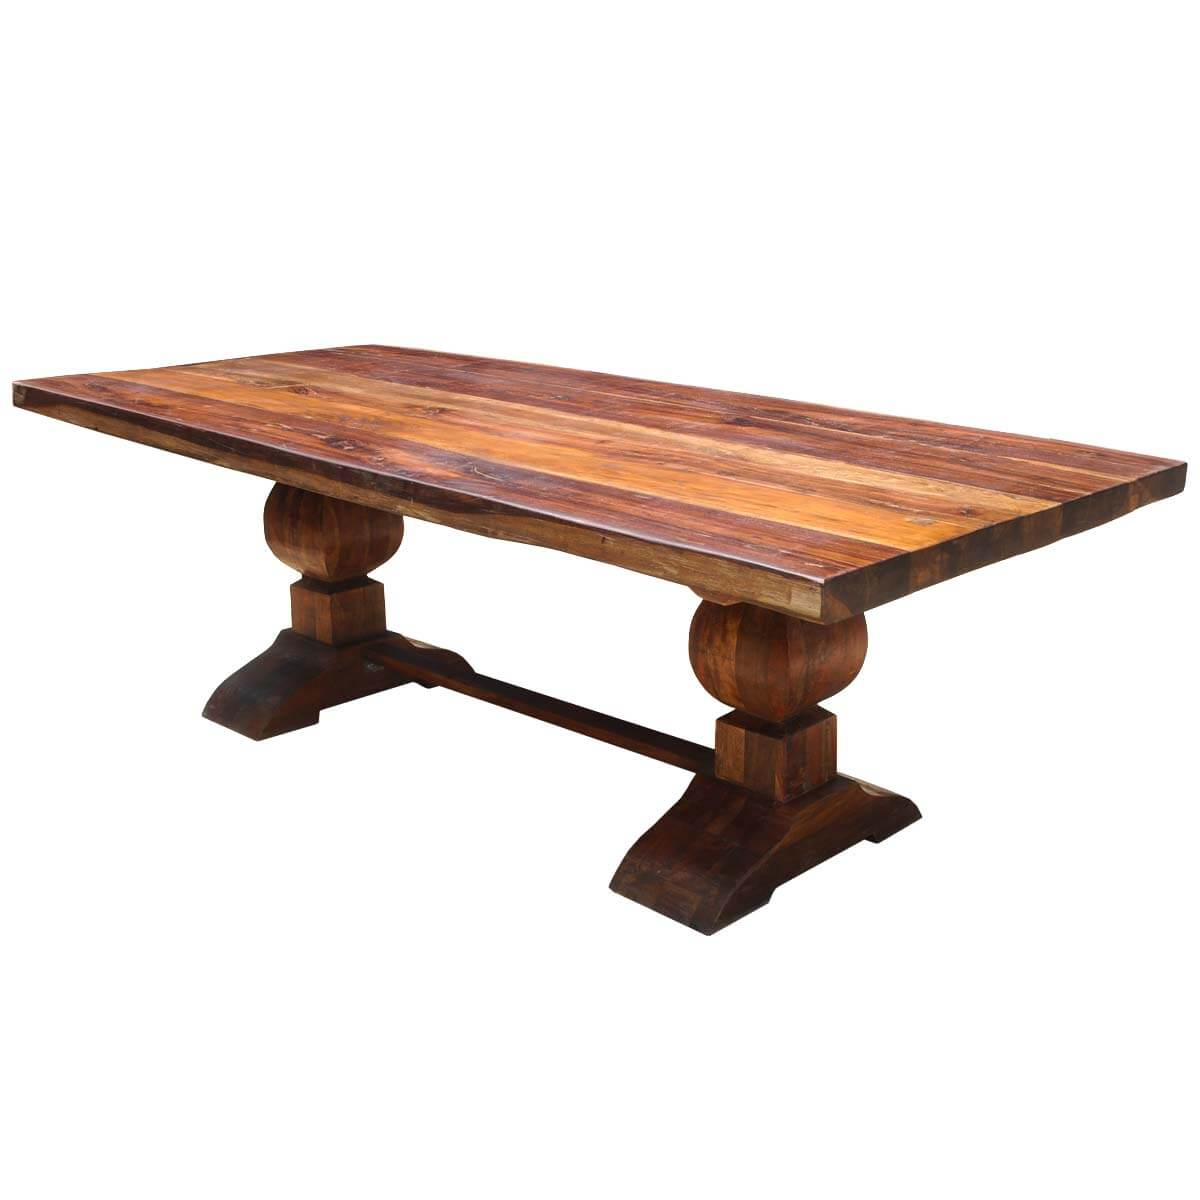 Large rustic reclaimed wood double trestle pedestal dining Rustic wood dining table